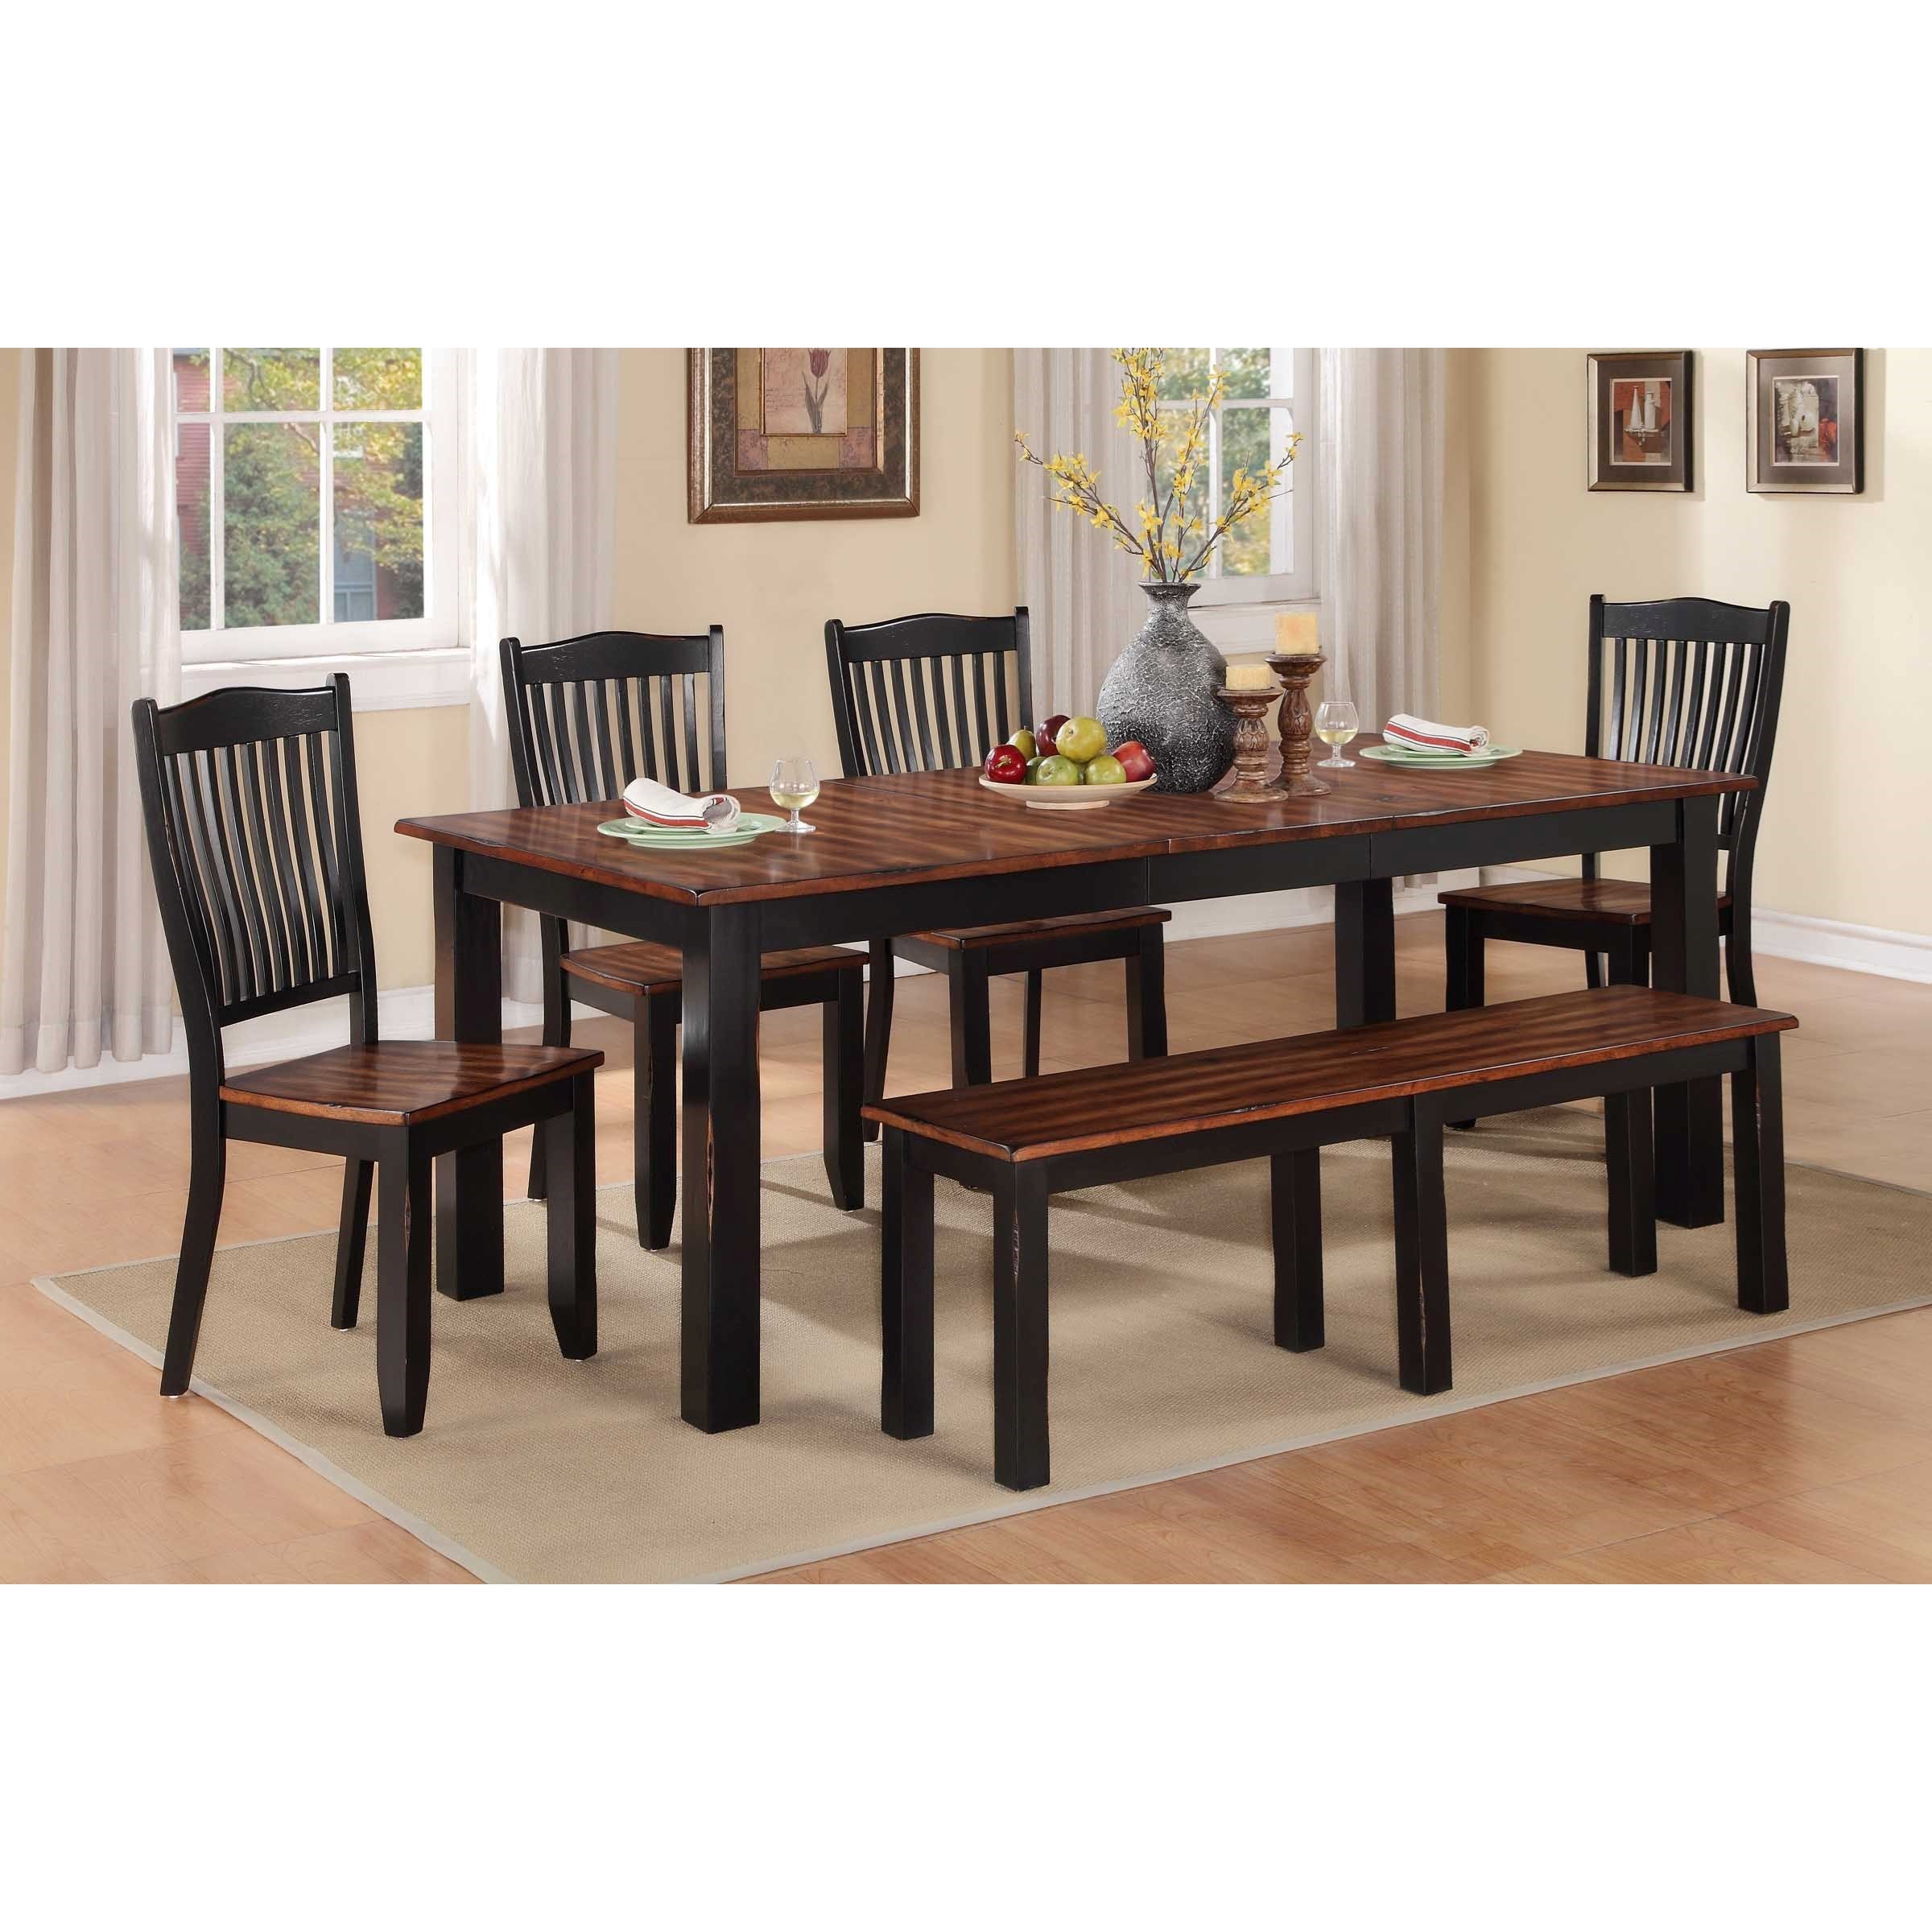 Camden 6 Piece Dining Set With Bench Rotmans Table Chair Set With Bench Worcester Boston